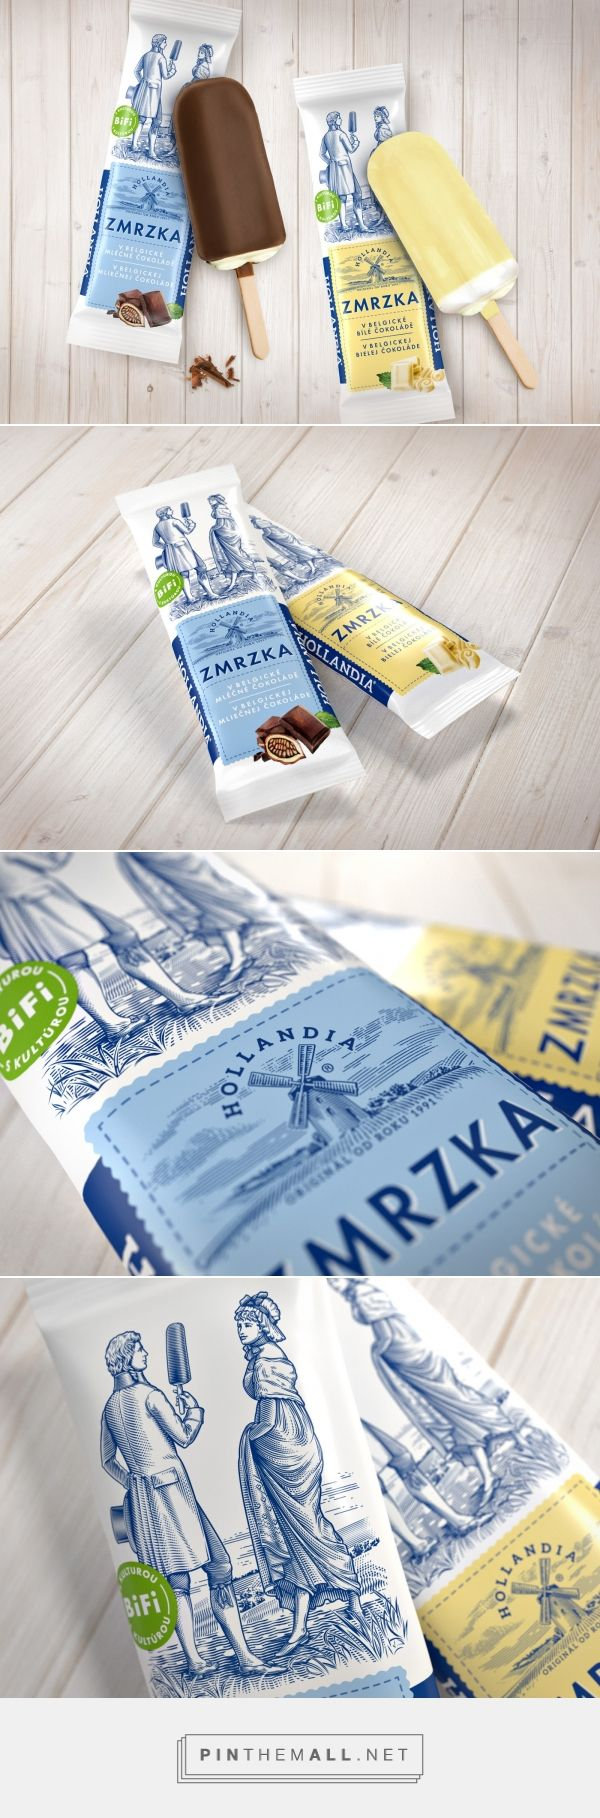 This classical dude is holding a giant over-sized lolly instead of a bouquet of flowers...on Hollandia Zmrzka ice cream packaging design by Cocoon Group - http://www.packagingoftheworld.com/2016/08/hollandia-zmrzka.html